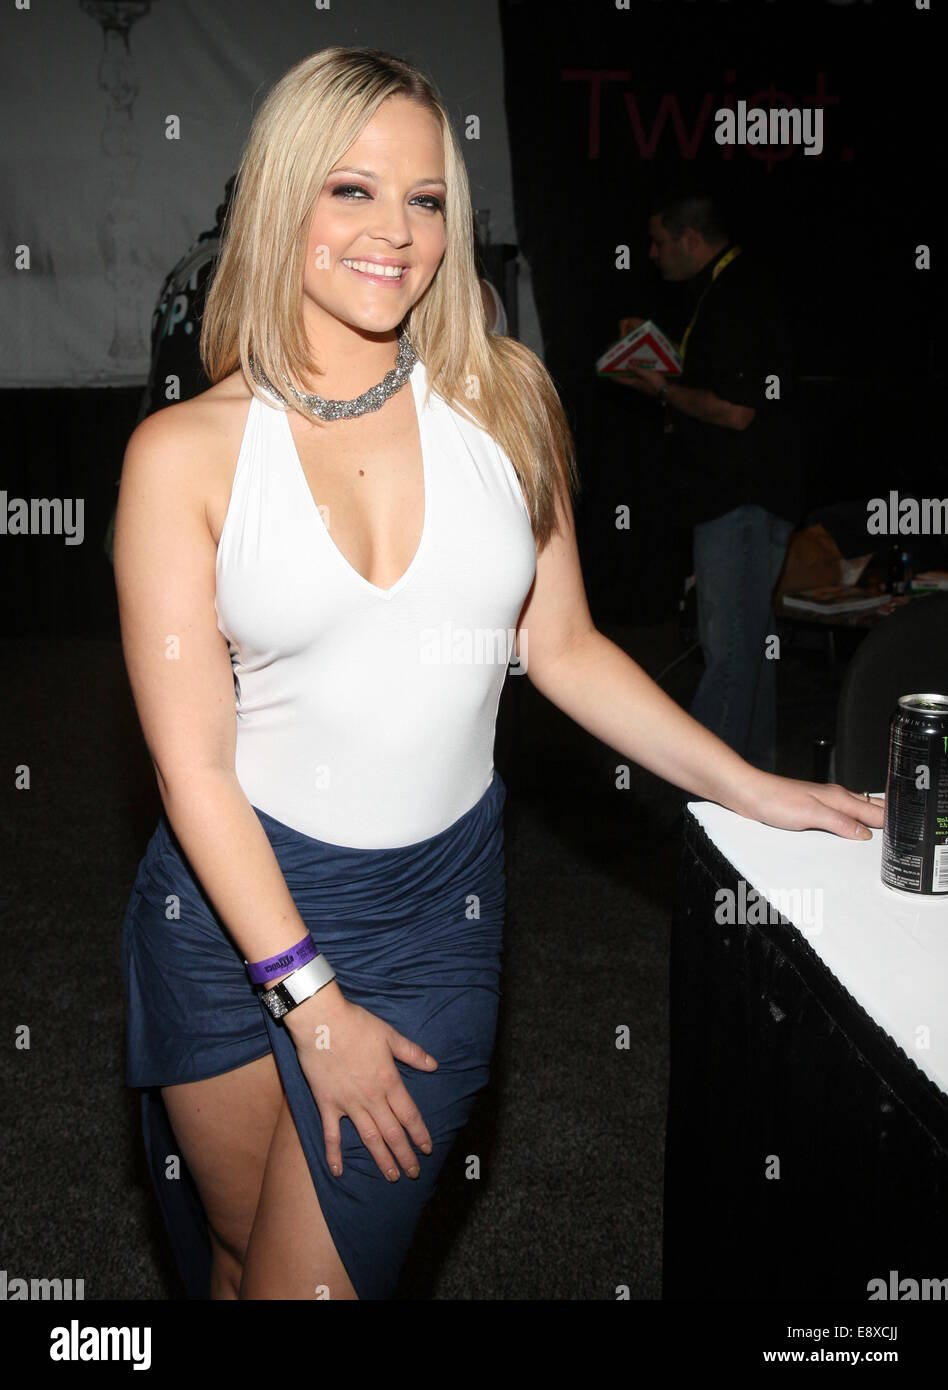 Alexis texas stock photos alexis texas stock images page 3 alamy exxxotica expo 2014 held at trump taj mahal in atlantic city day 2 featuring altavistaventures Choice Image